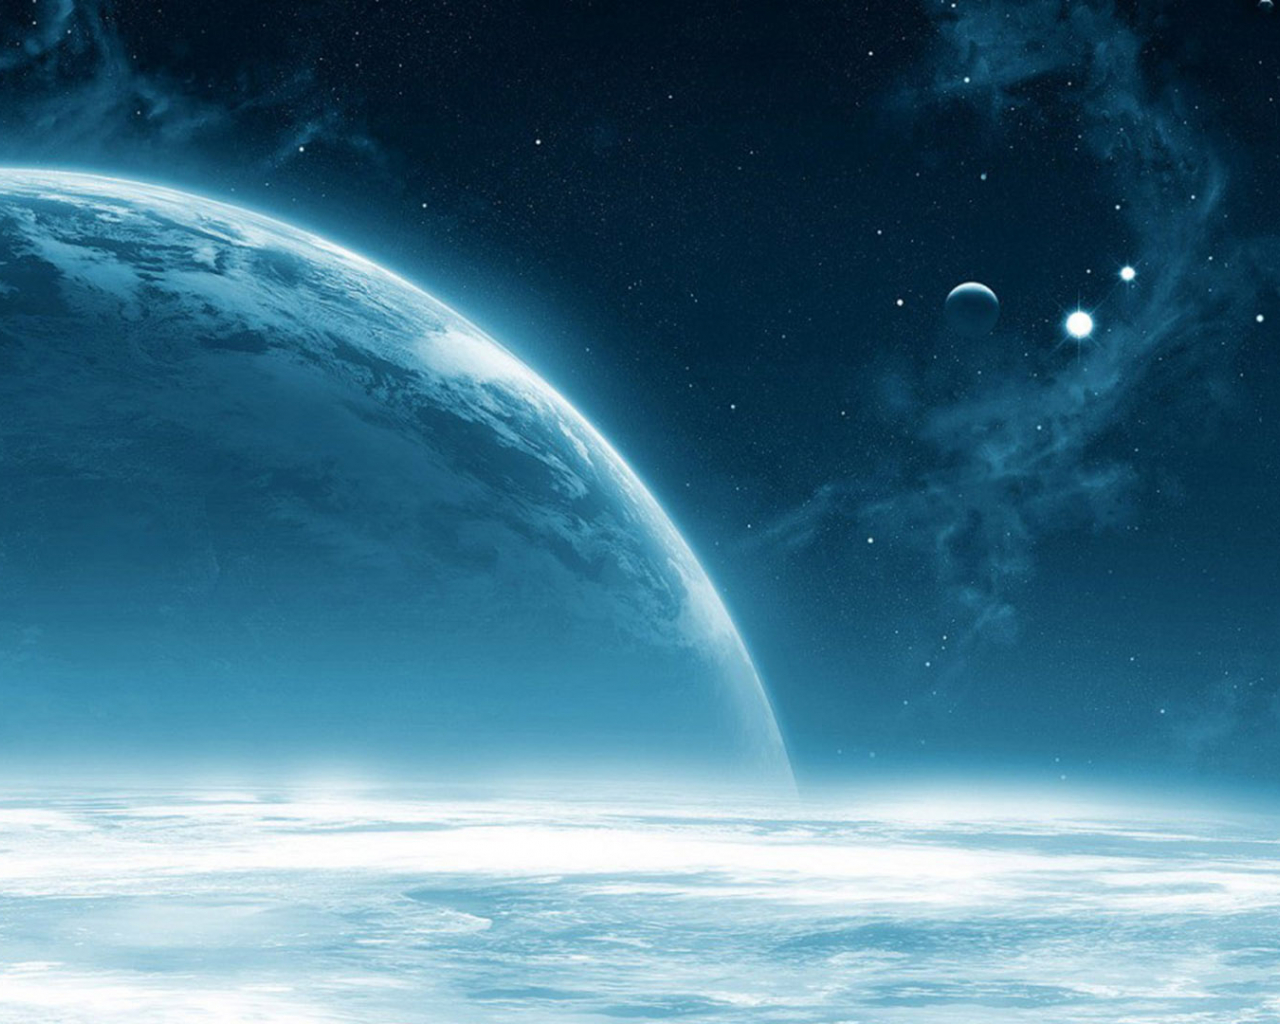 Free download Nasa Space Pictures Wallpaper Pics about ...